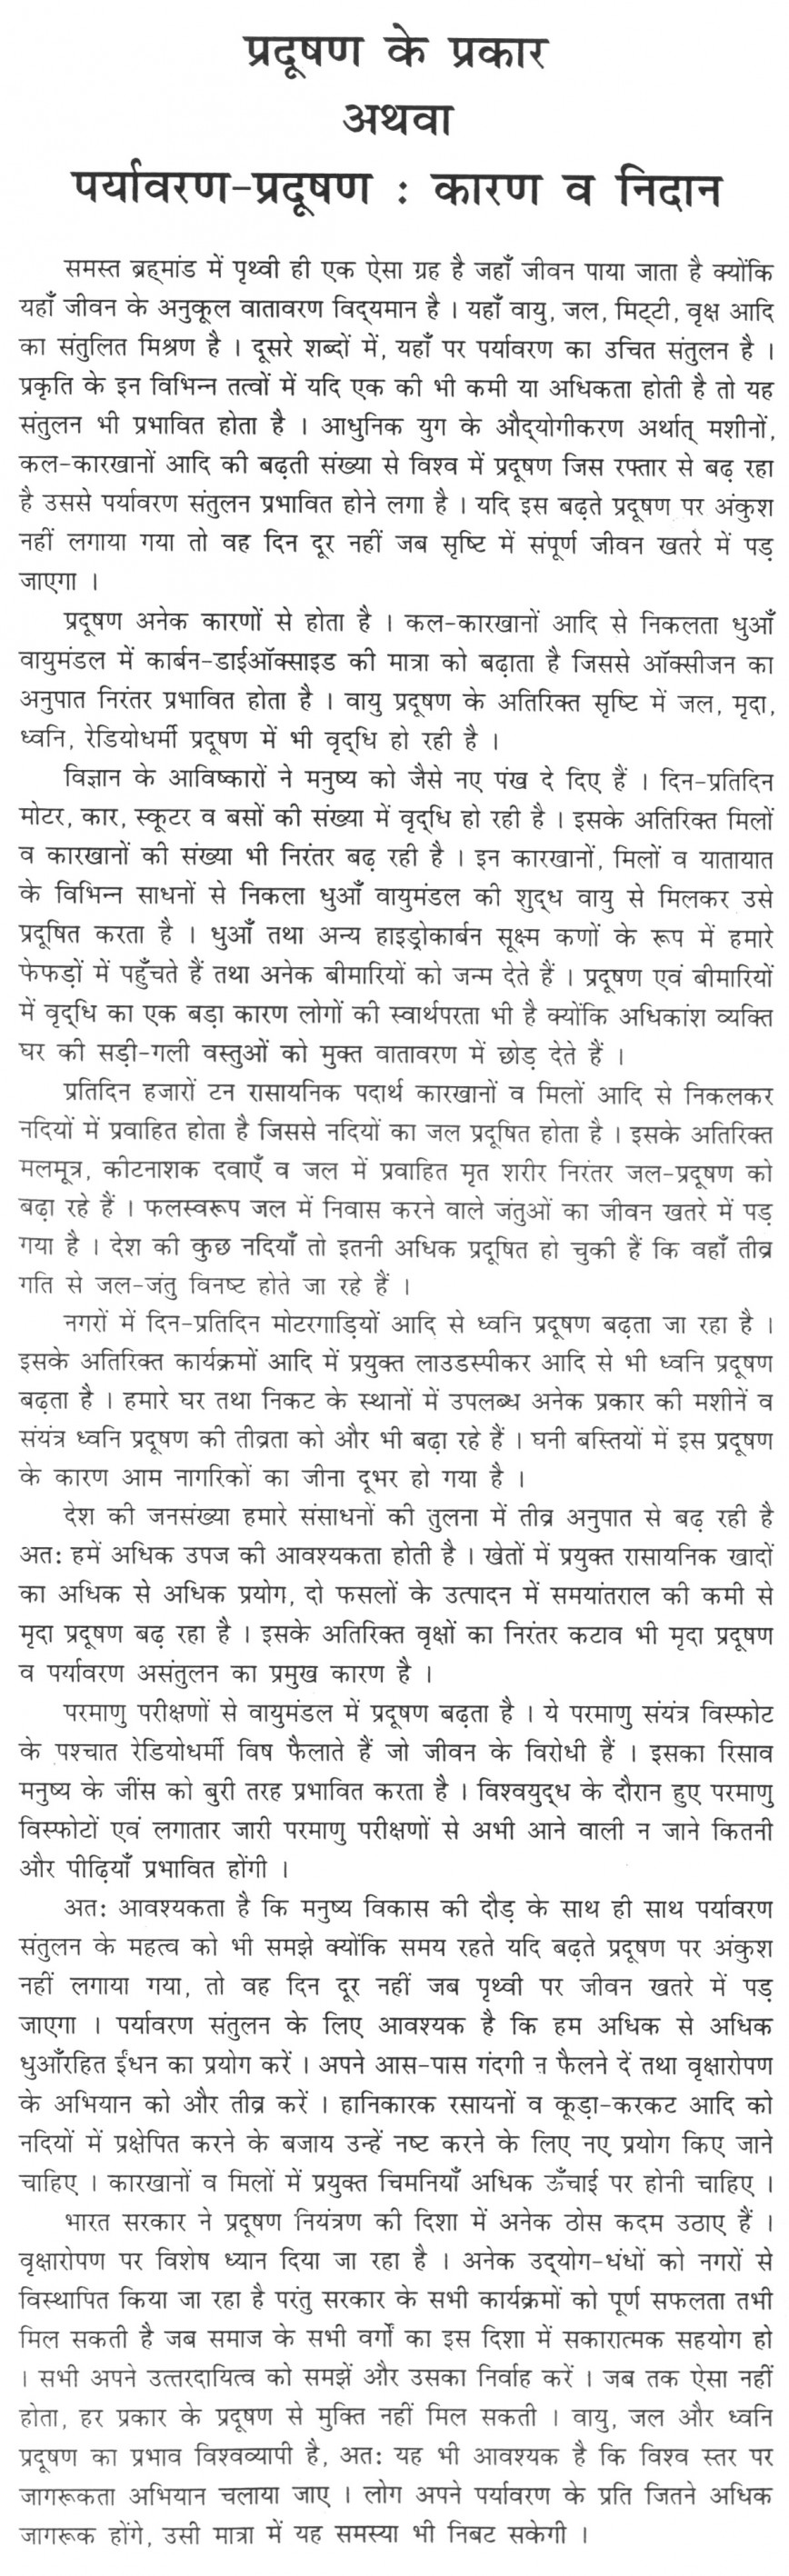 014 Good Habits Essay In Hindi Exceptional Food Habit 868